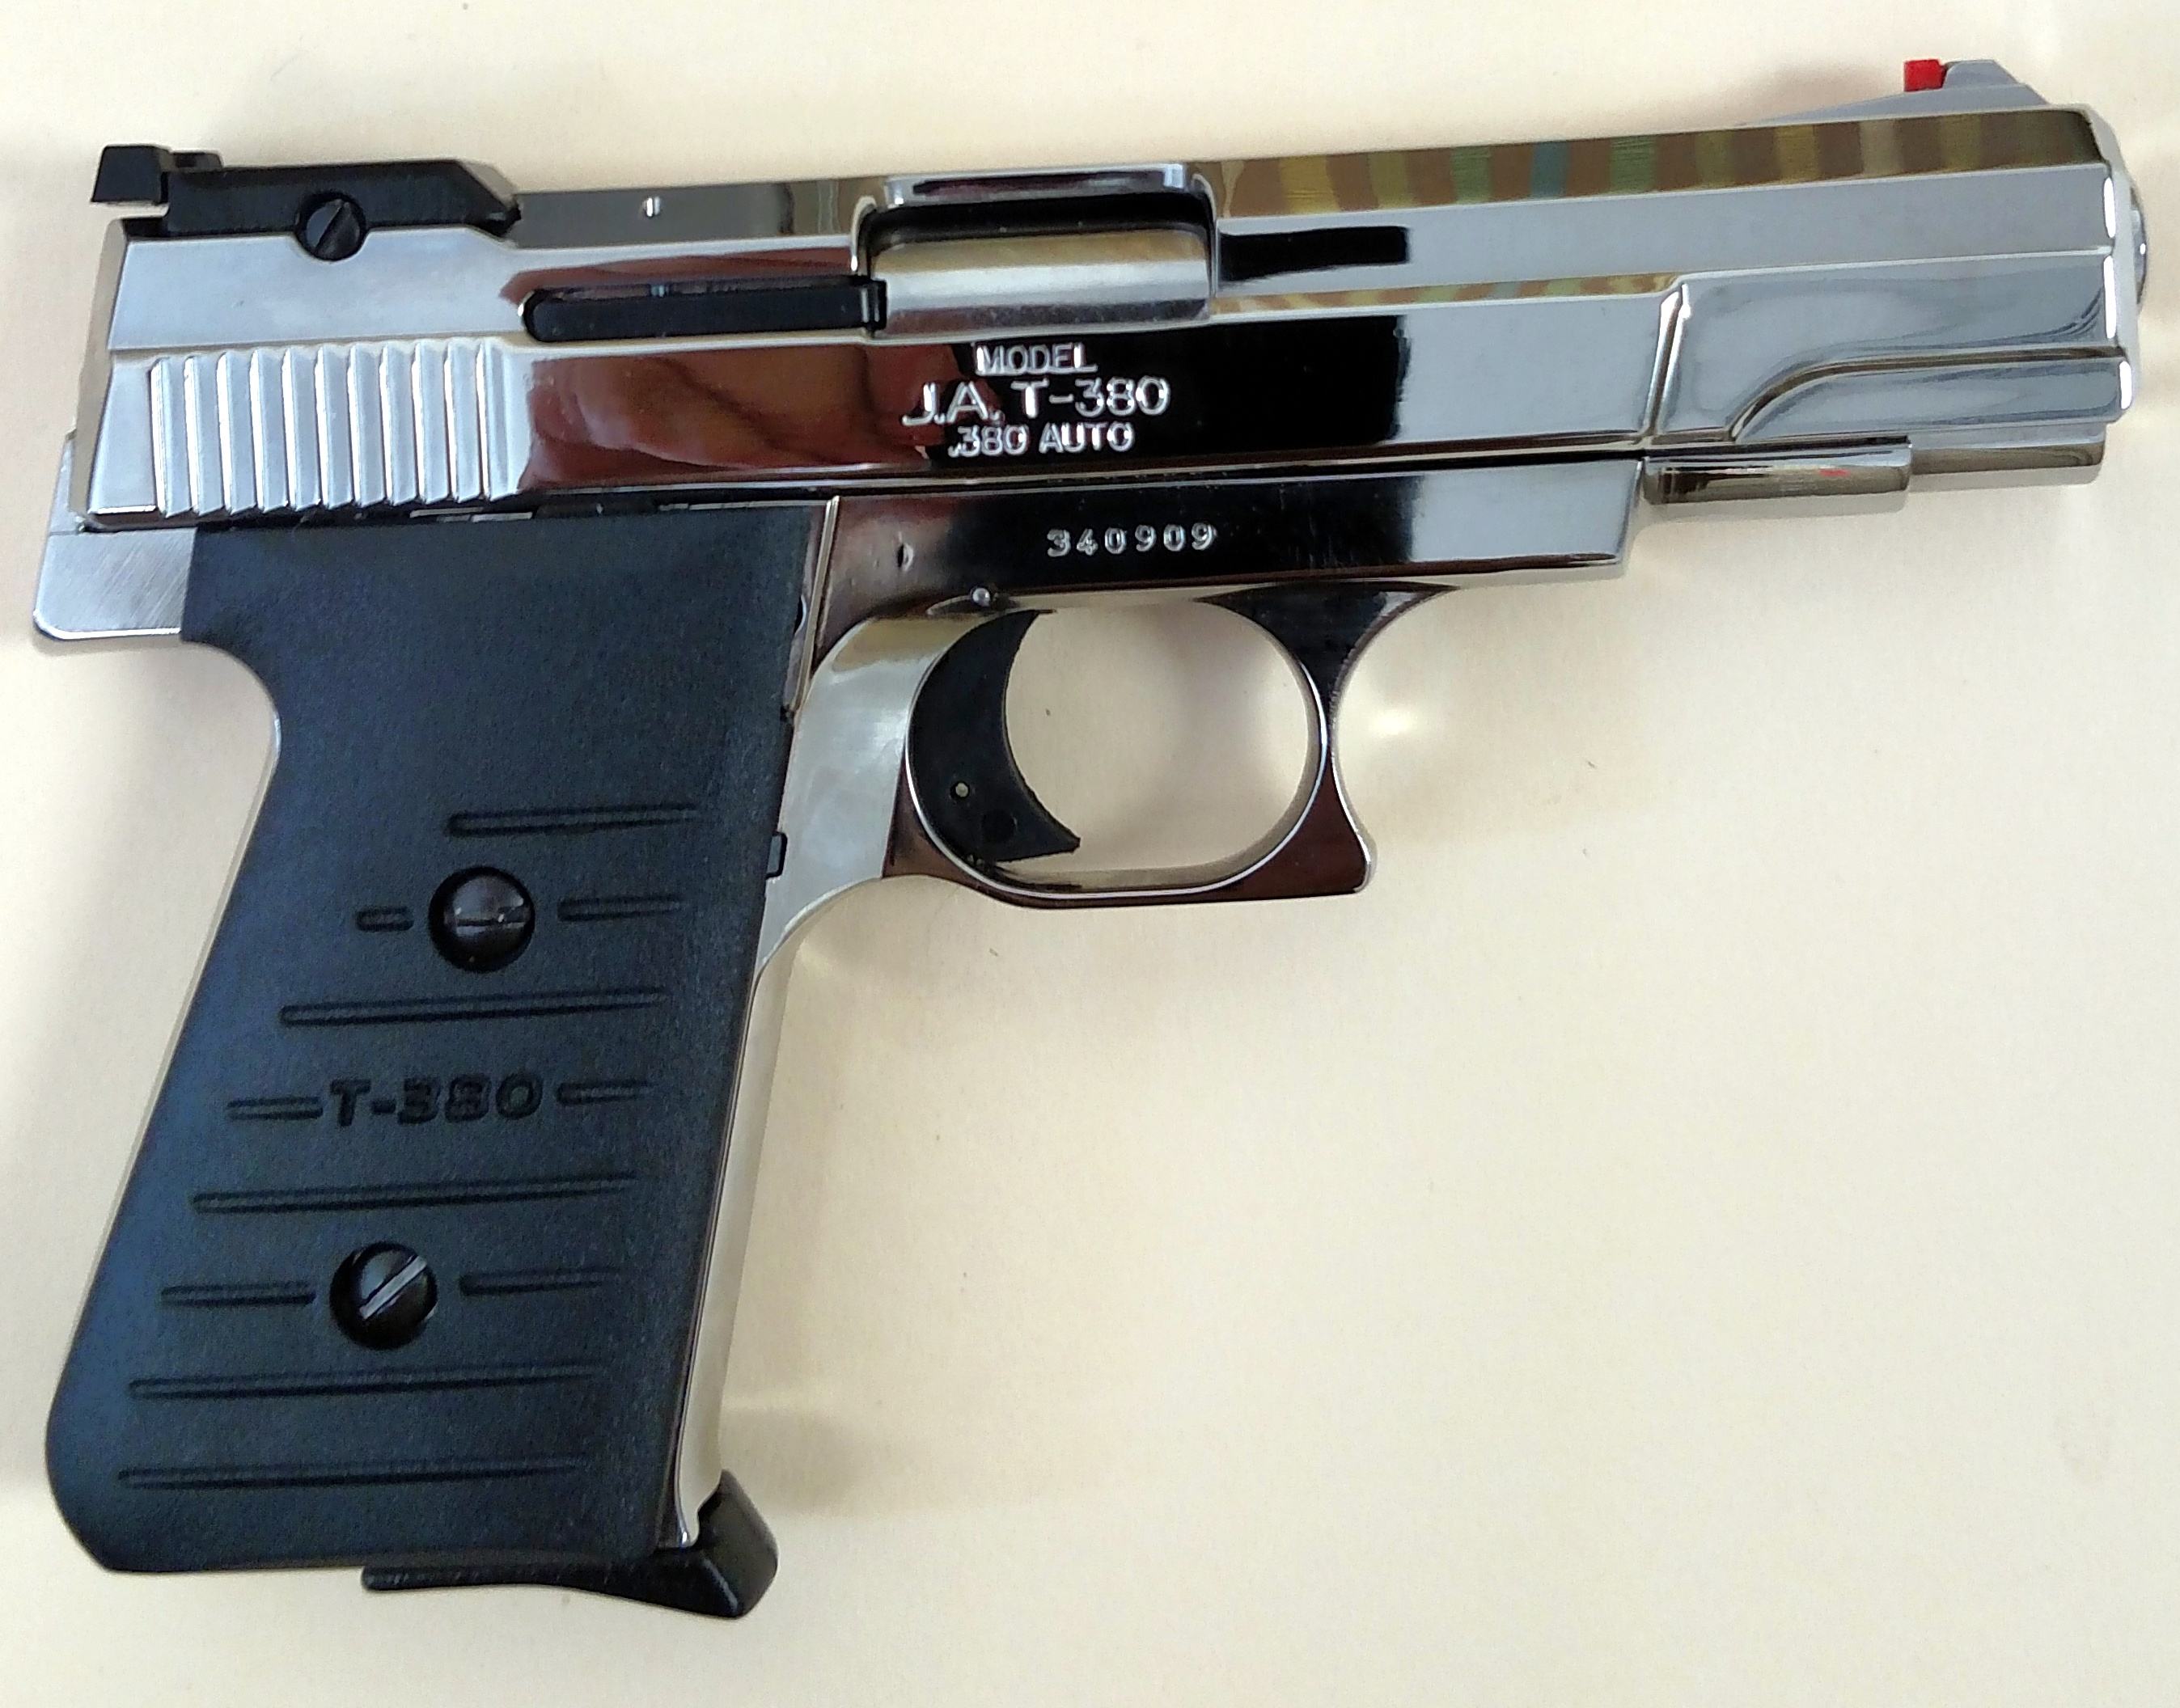 Hi Point 380 For Sale - Brand new beautiful jimenez arms t 380 highly polished chrome pistol w 2 mags